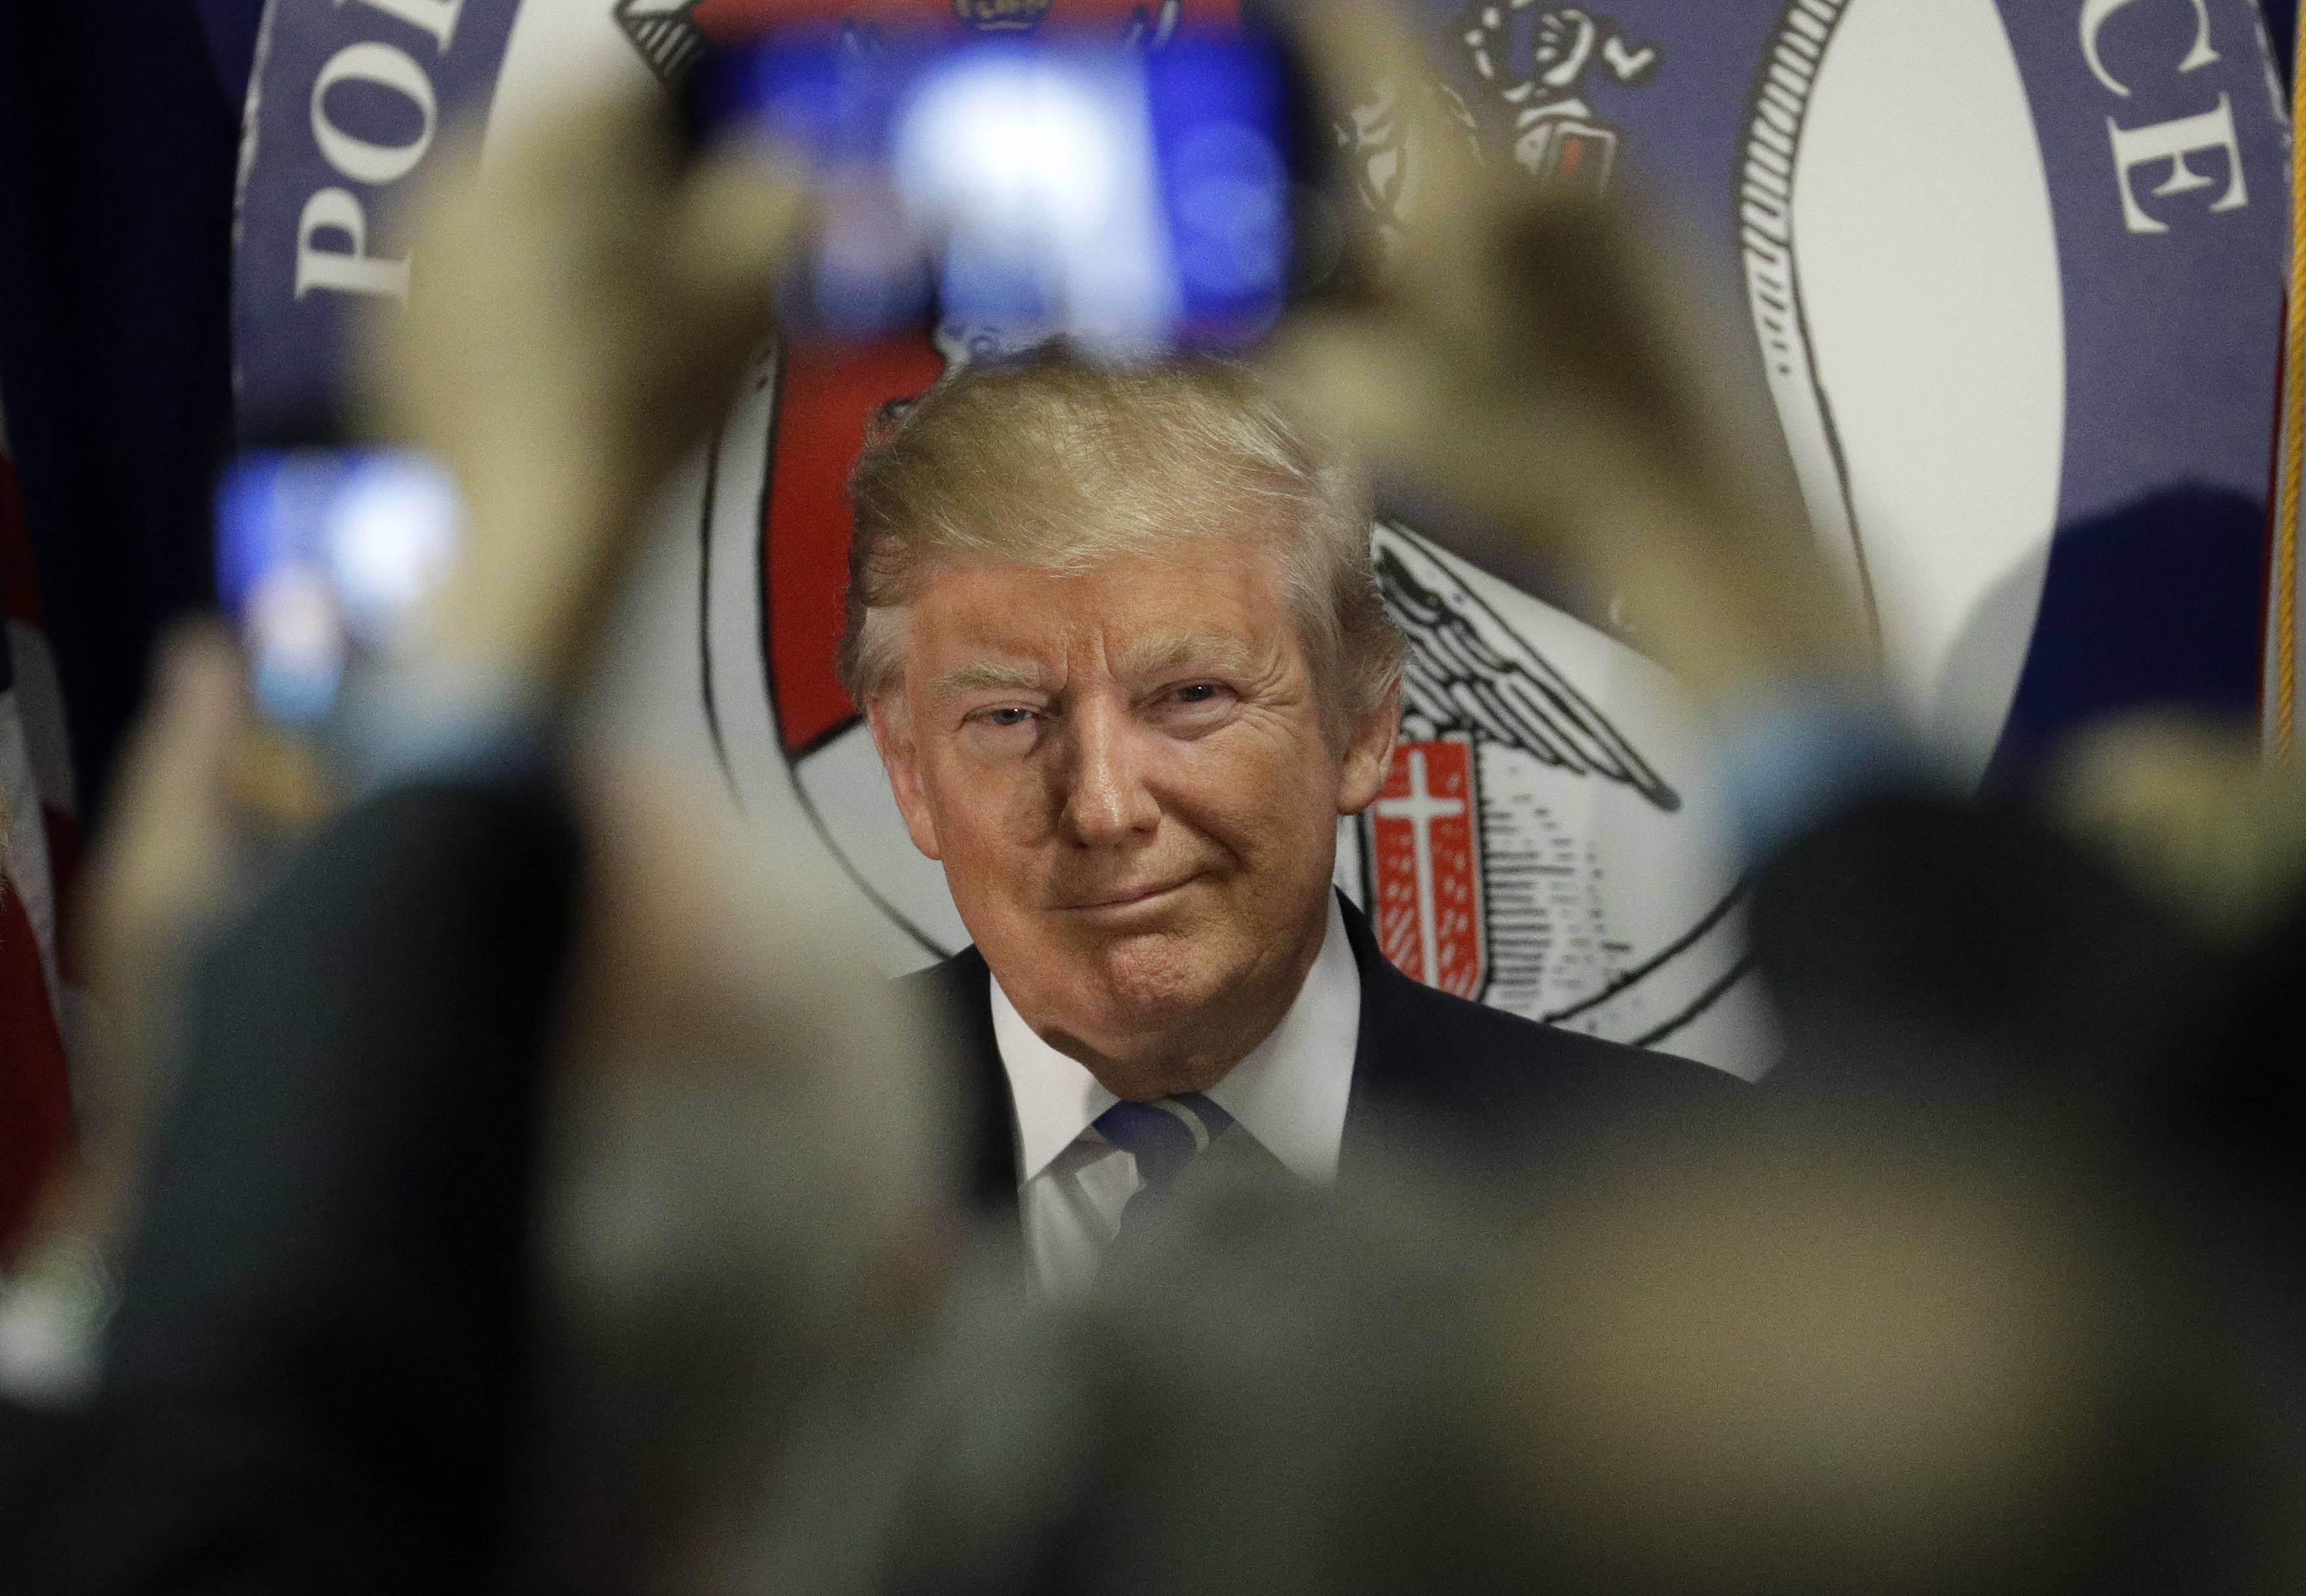 Trump in Chicago: I'll be 'true friend' to Poland